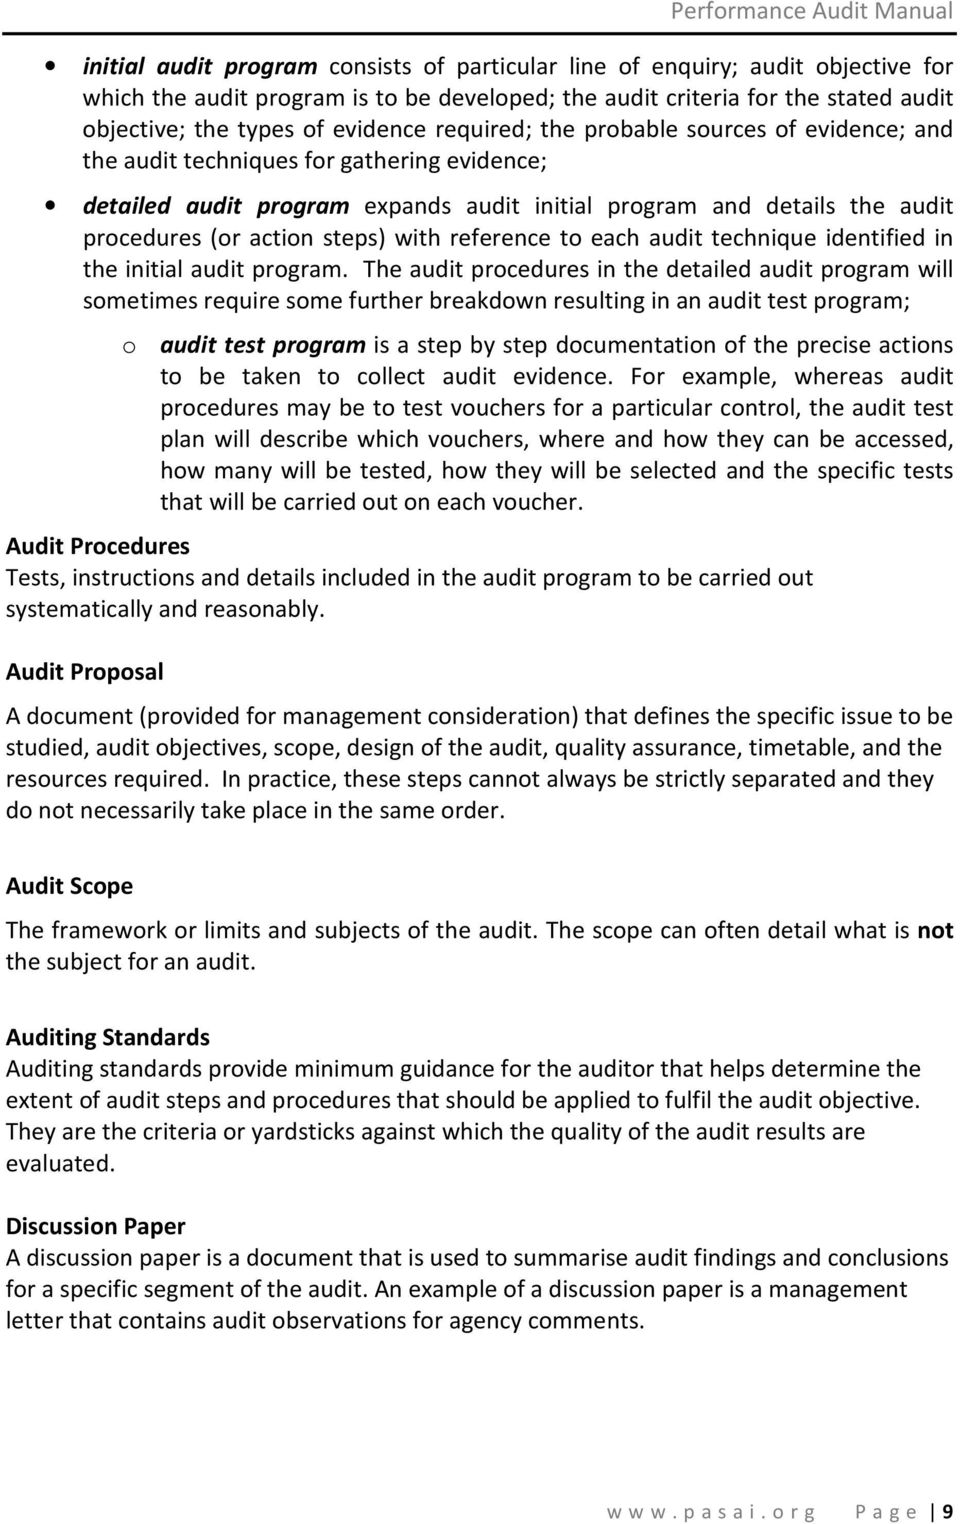 with reference to each audit technique identified in the initial audit program.